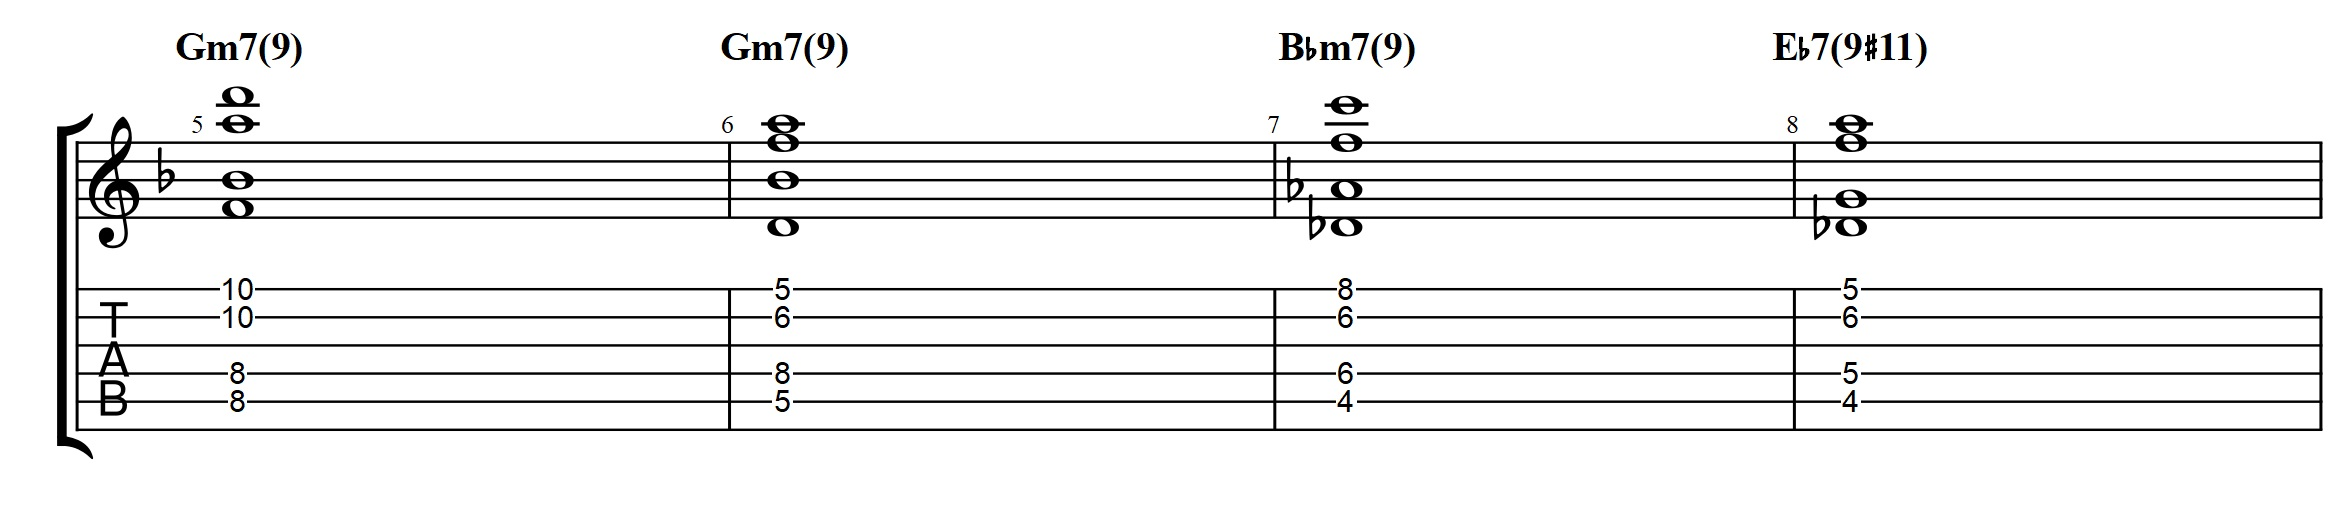 Allan holdsworth chords on a jazz standard advanced modern chord the chord voicings that i am using on the am7 is a stack of 4ths over a low e the voicing is less common because it has the 3rd and 7th high hexwebz Gallery